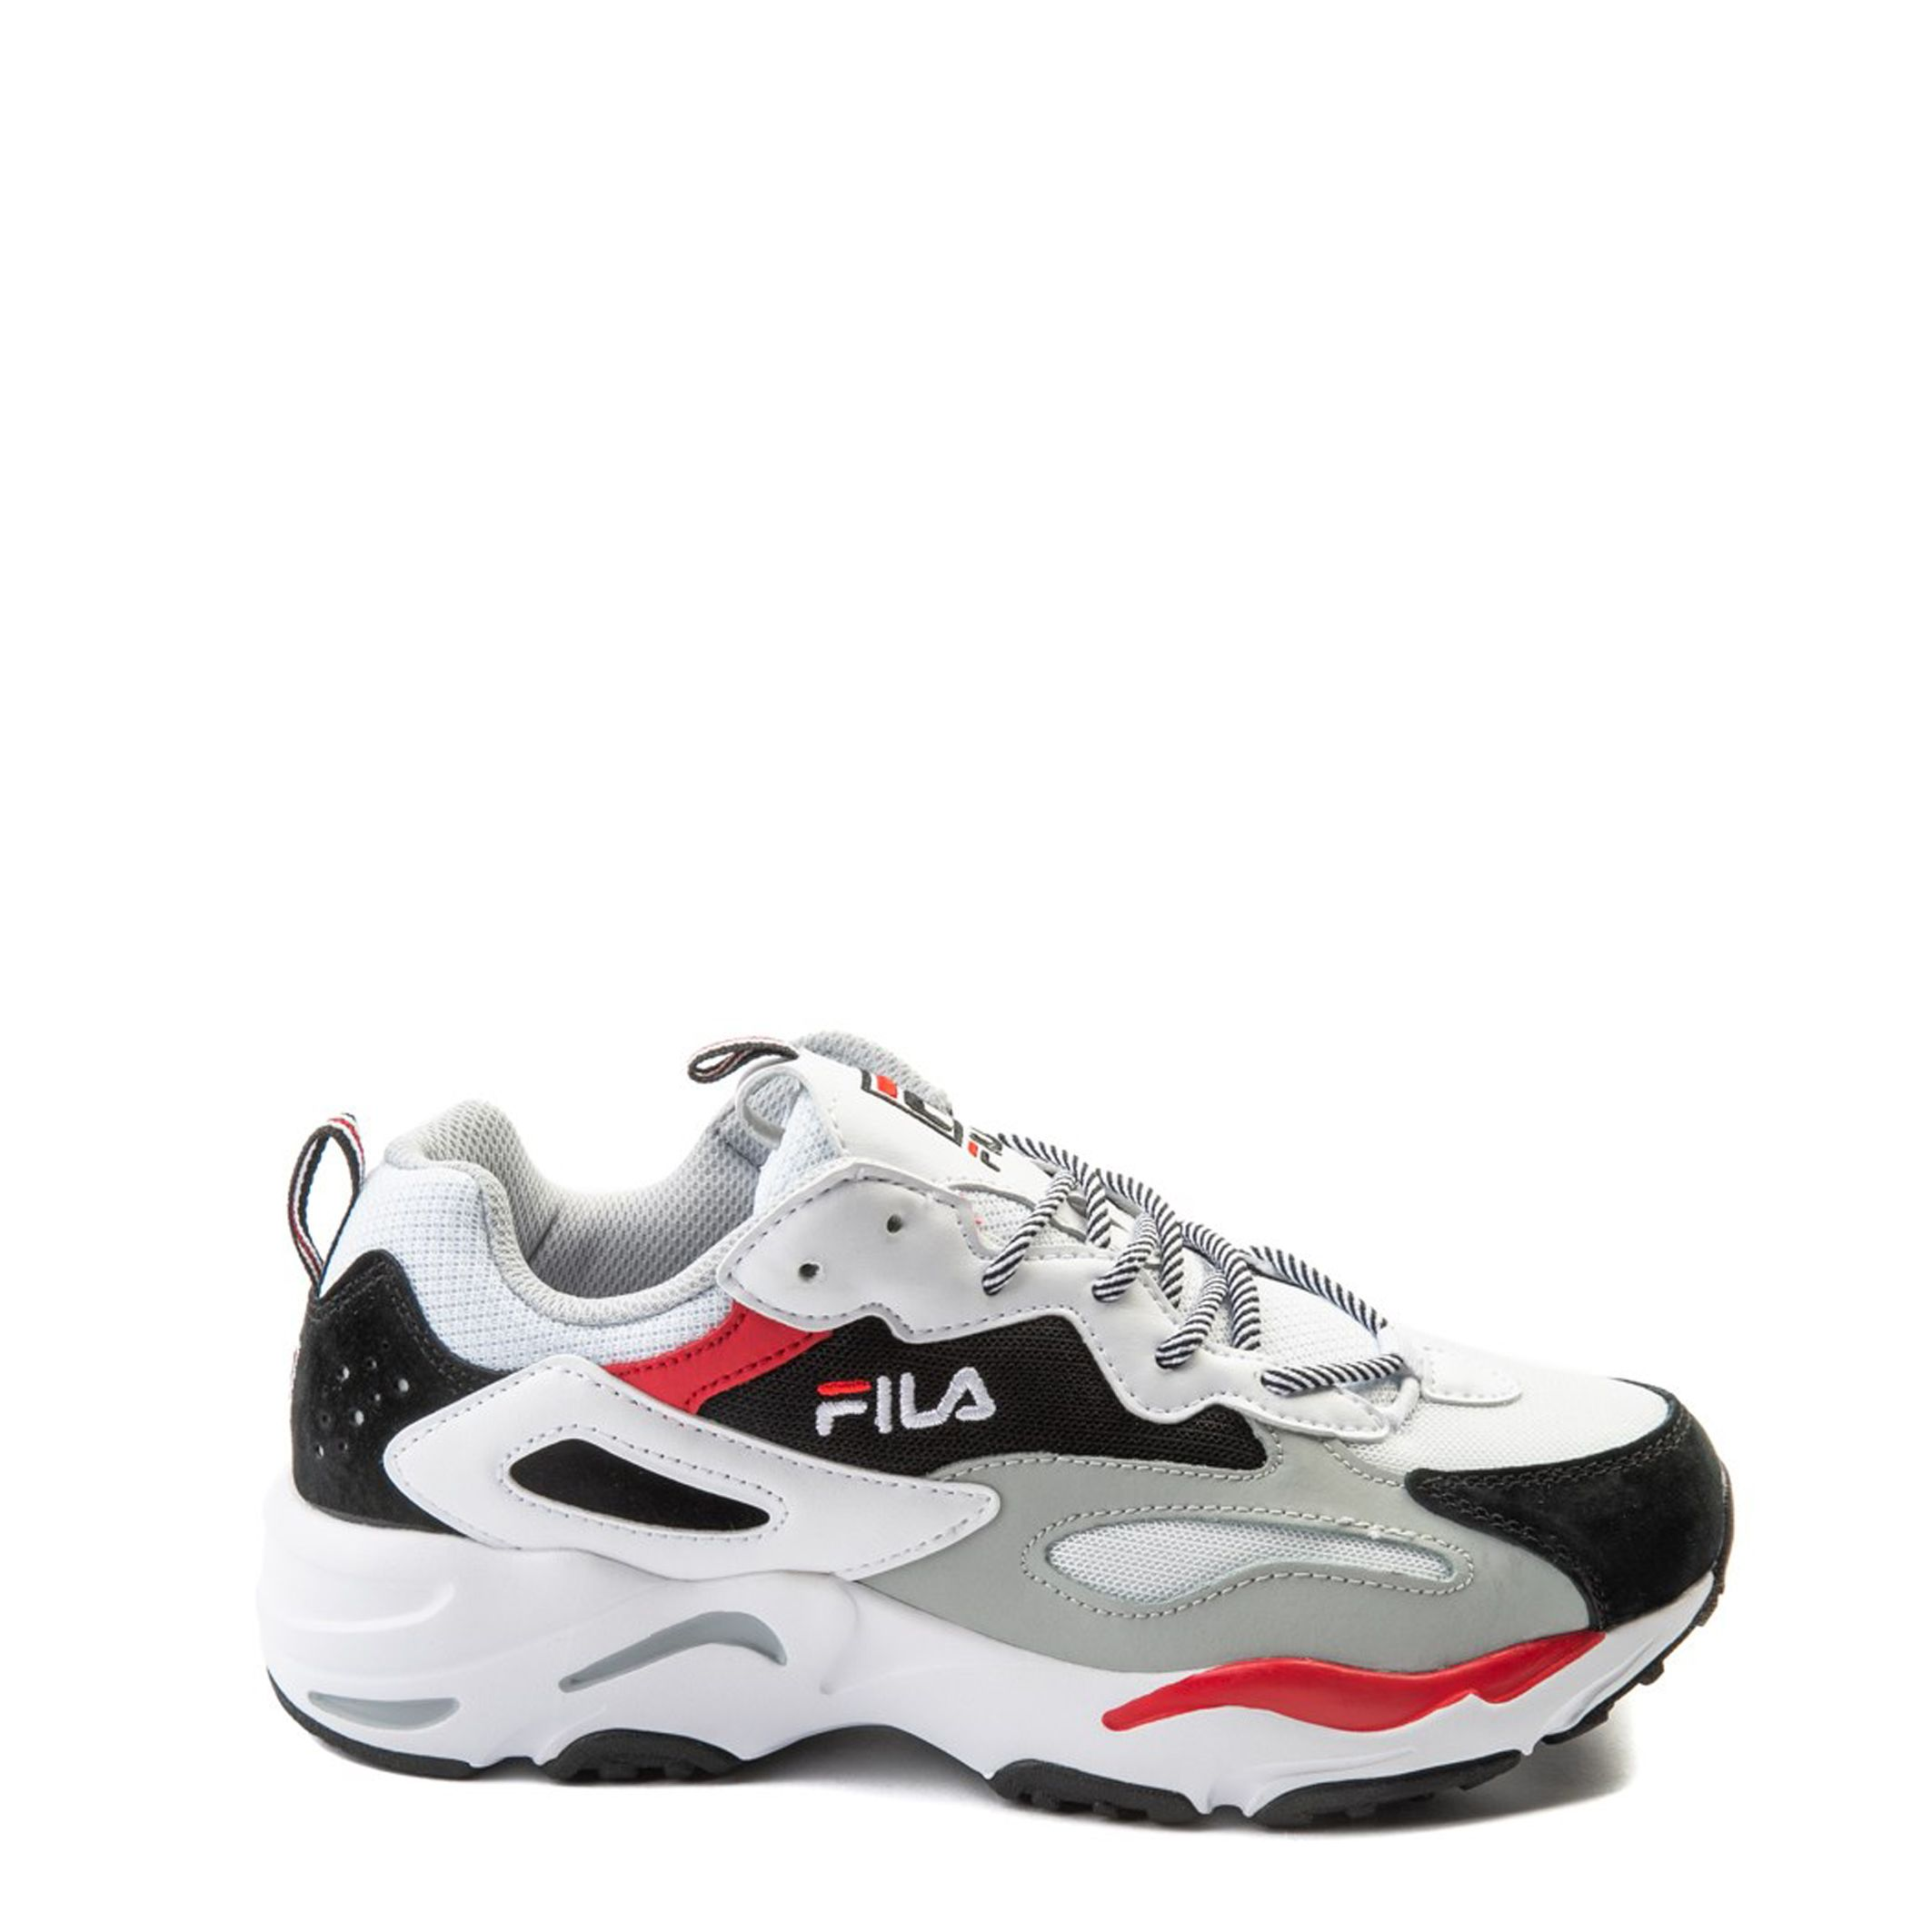 Chaussures Fila – RAY-TRACER_1010813